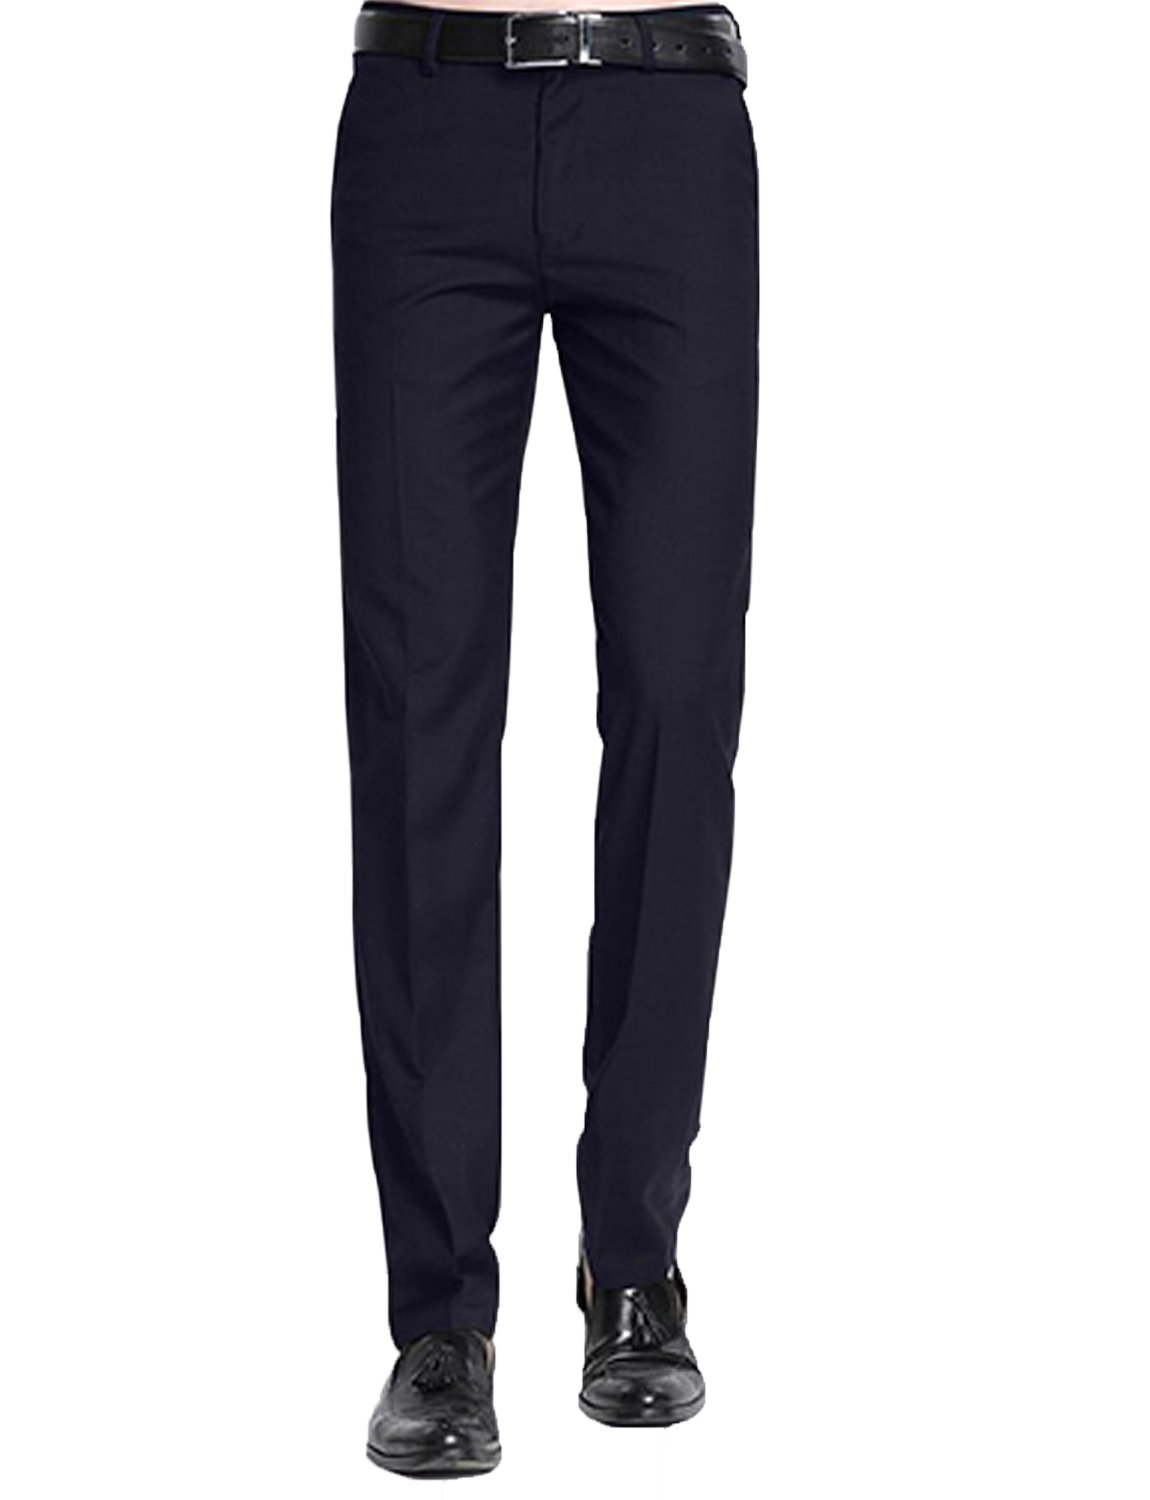 JYDress Mens Wrinkle-Free Slim Fit Stretch Casual Pants Flat Front Suit Pants PS81131